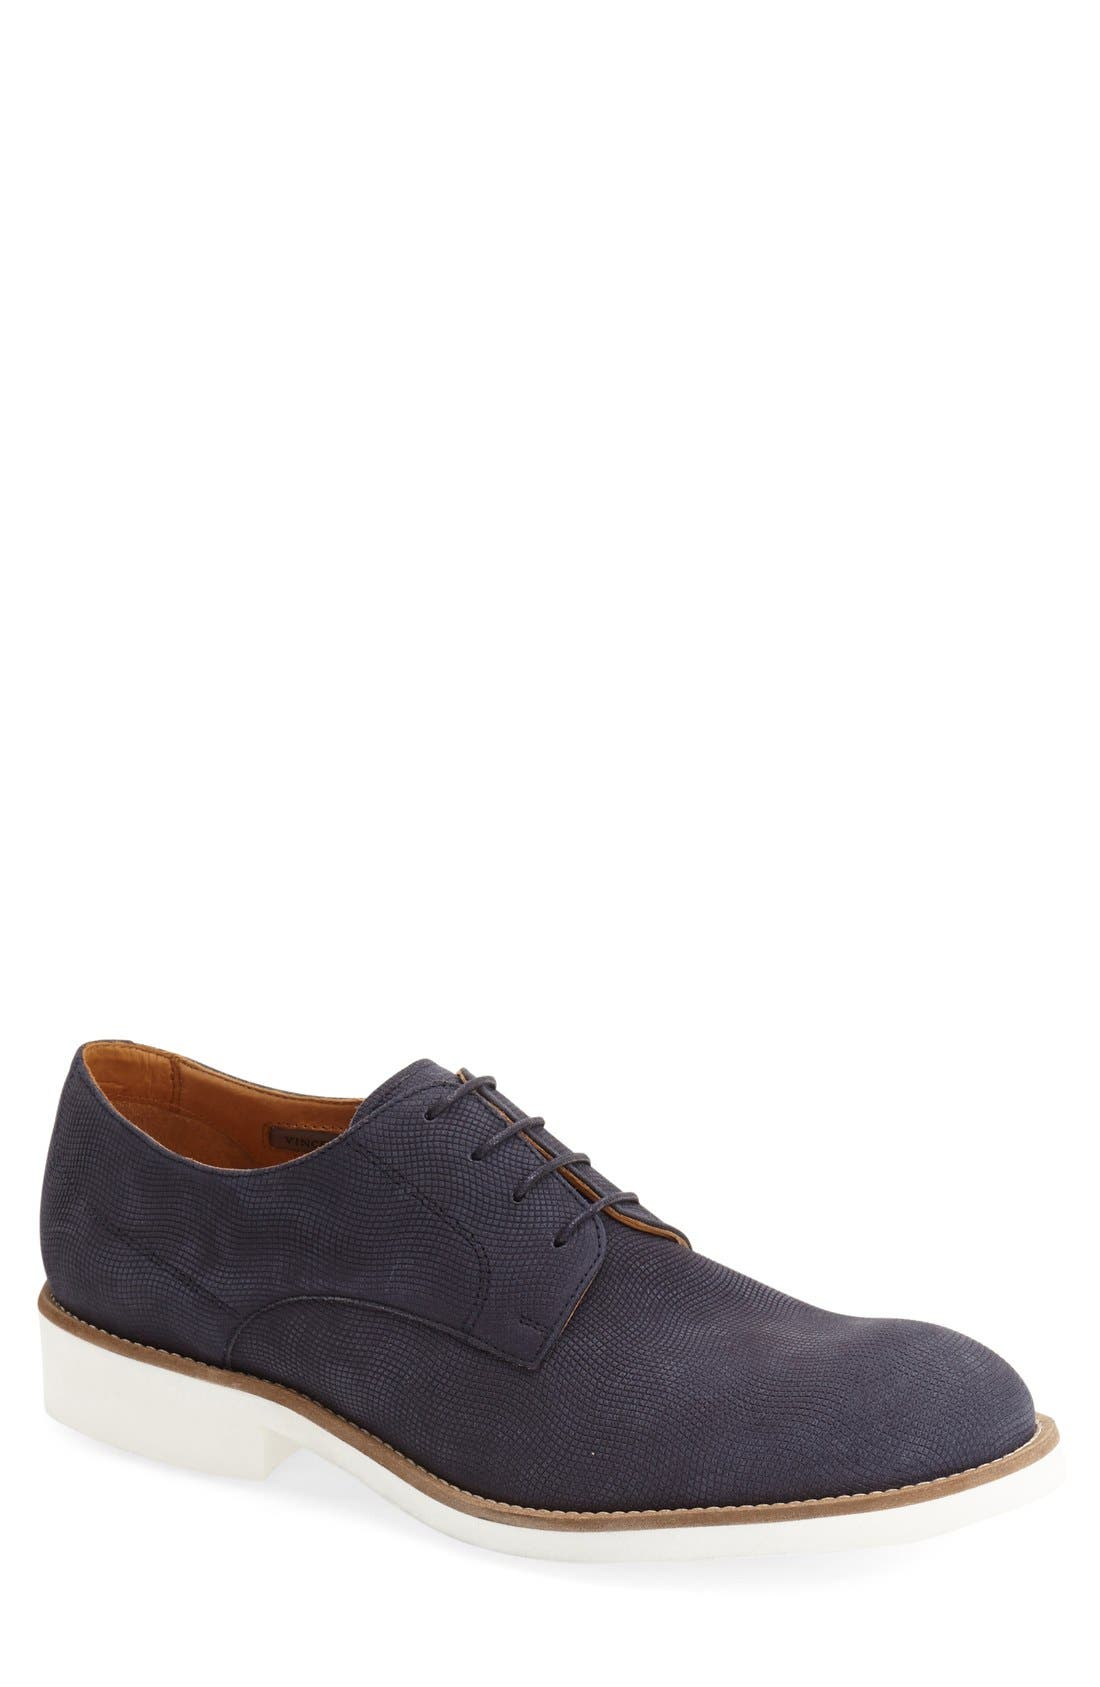 Alternate Image 1 Selected - Vince Camuto 'Apexx' Nubuck Derby (Men)